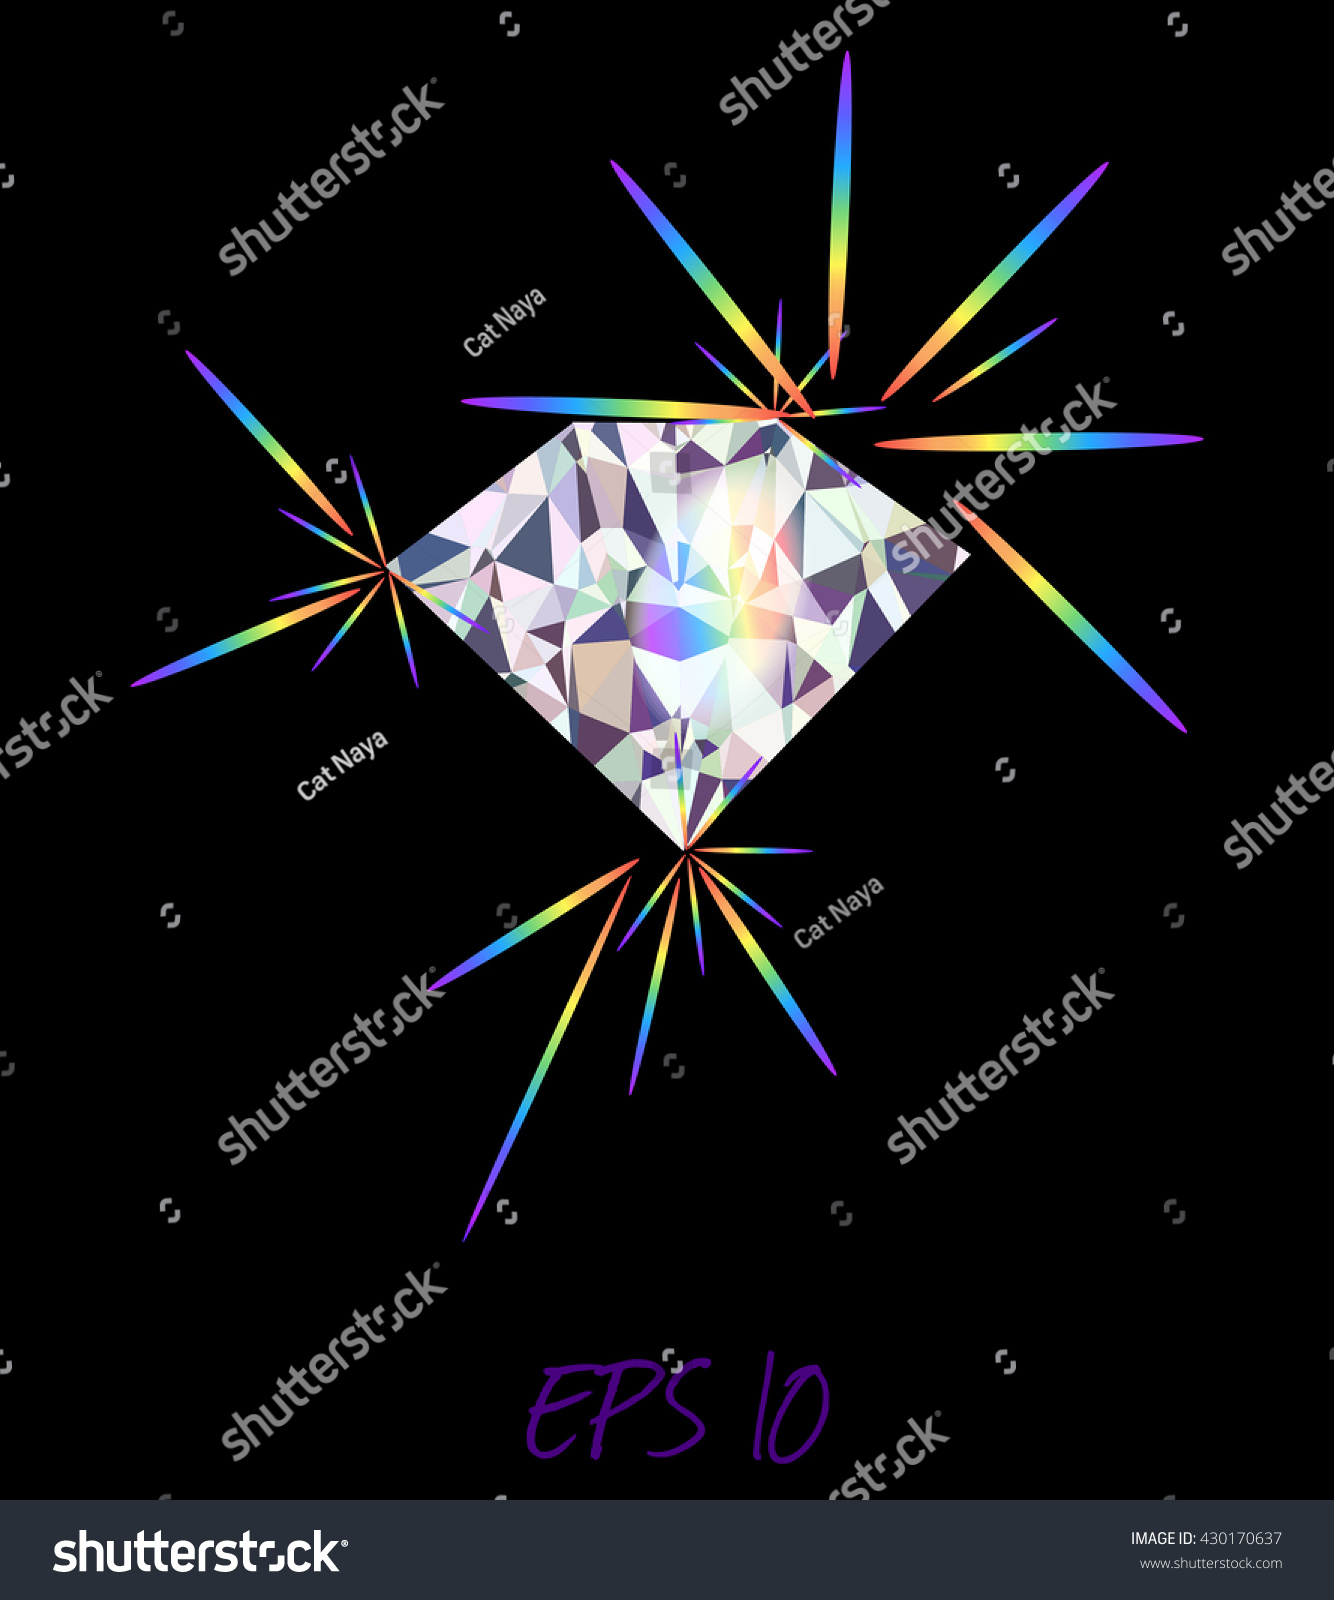 diamond classic of image tone stock photo free background blue royalty